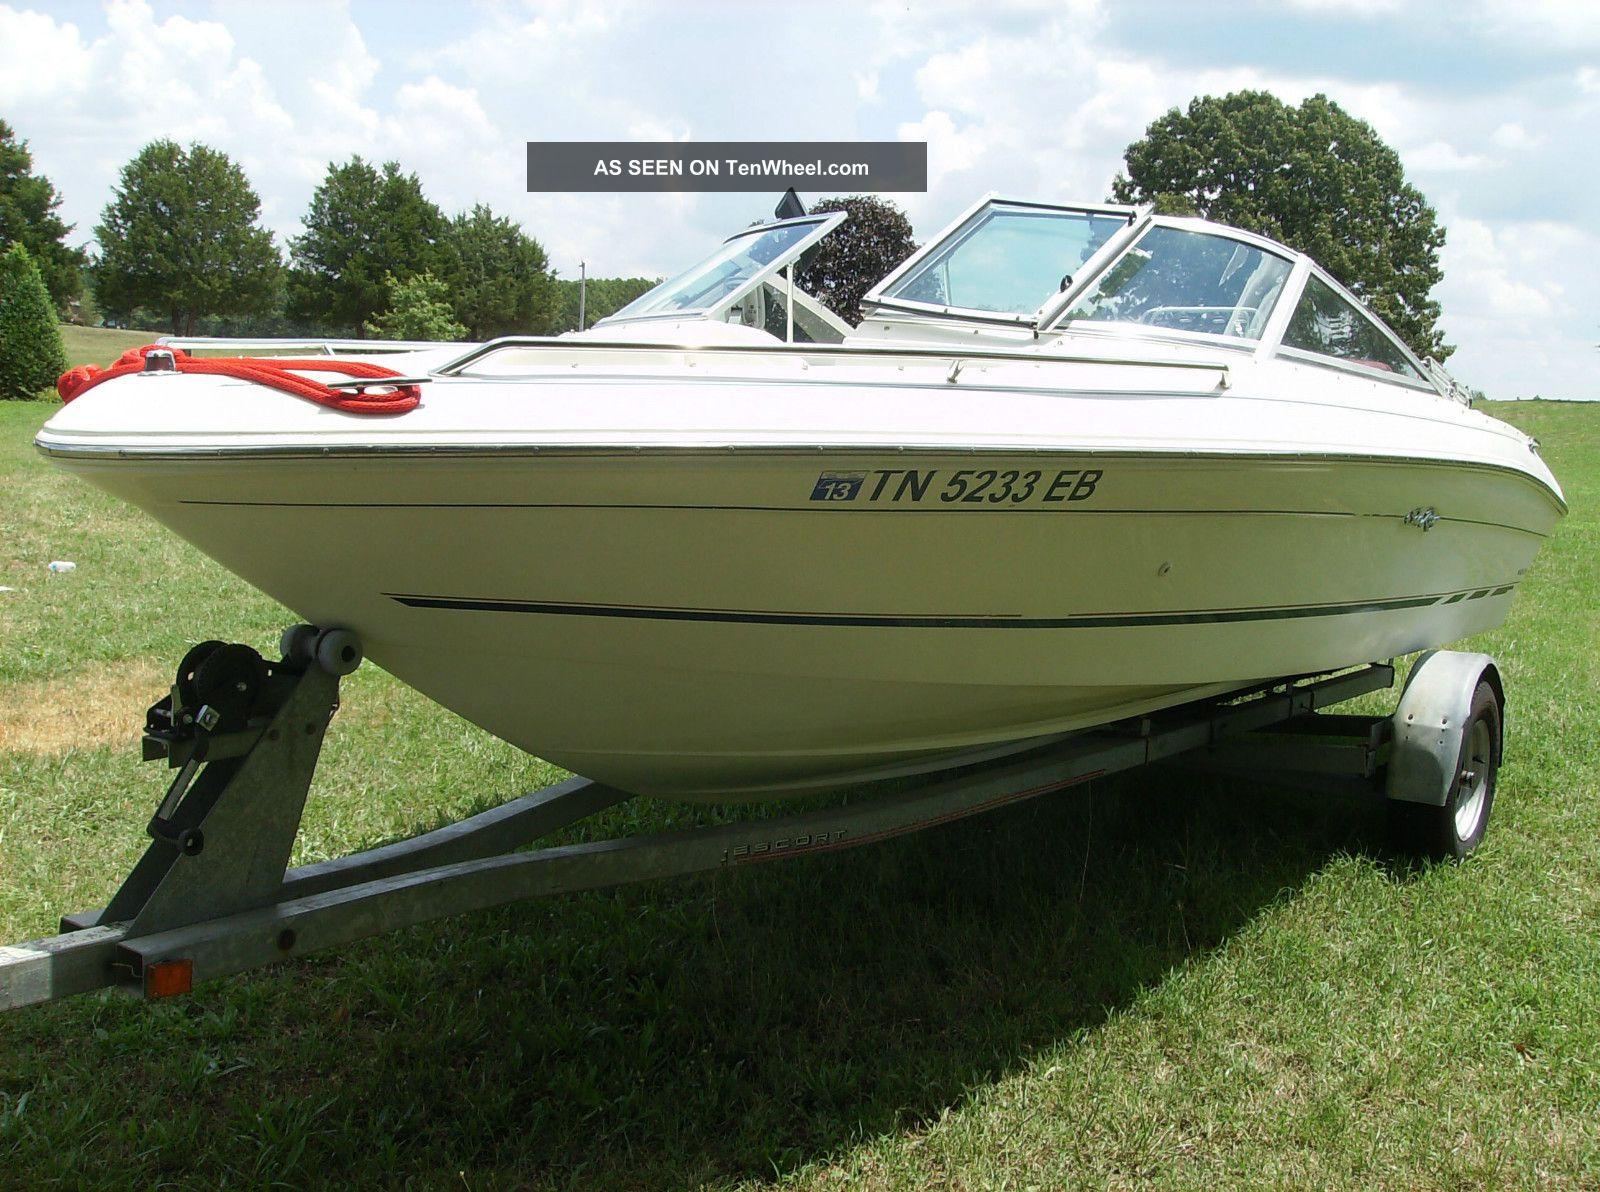 Pictures of Bowrider Sea Ray. sea ray 175 bowrider Manual ...